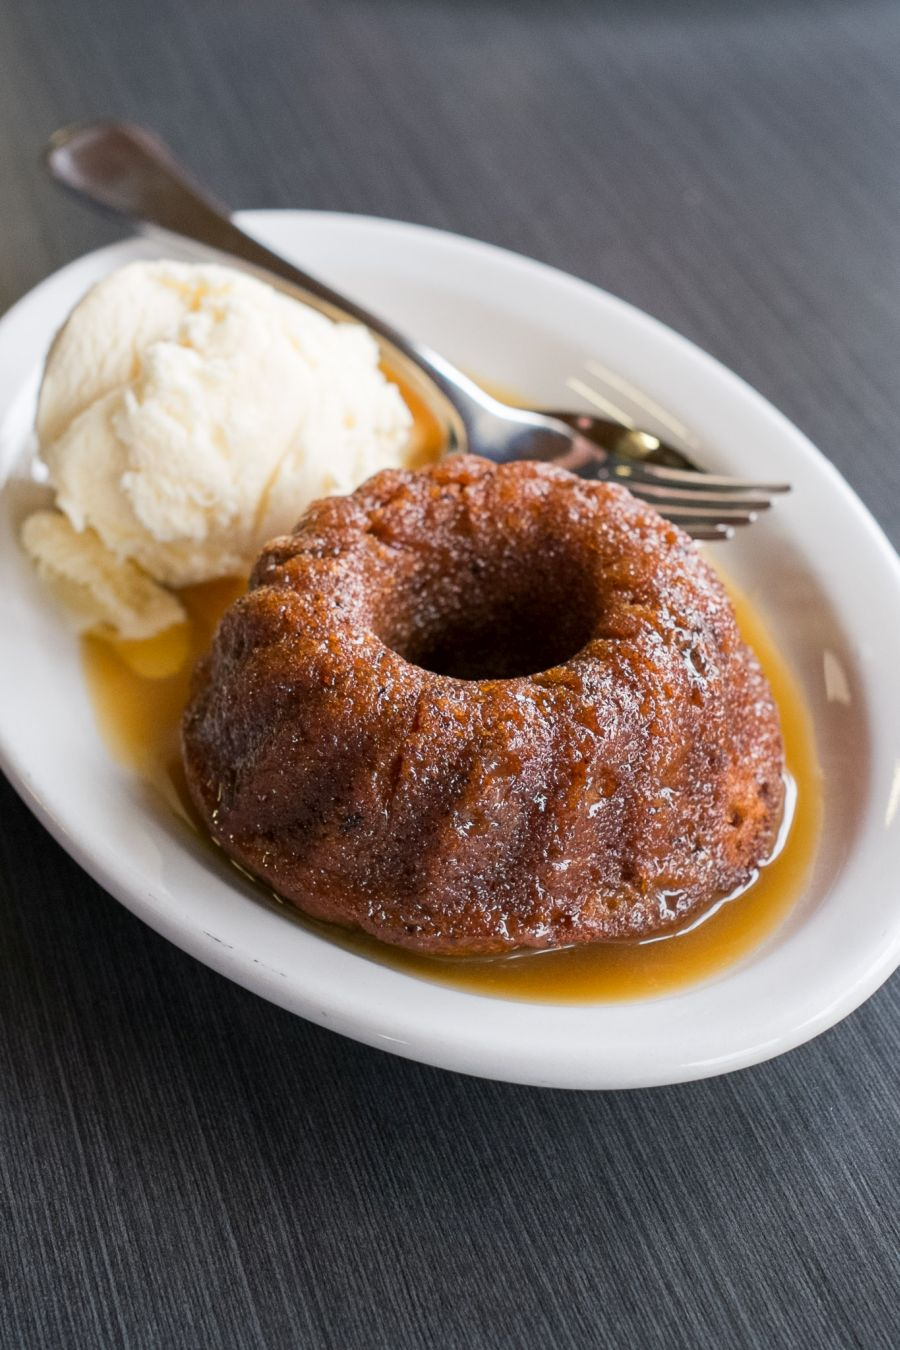 Sticky date pudding with butterscotch and ice cream (AU$7)